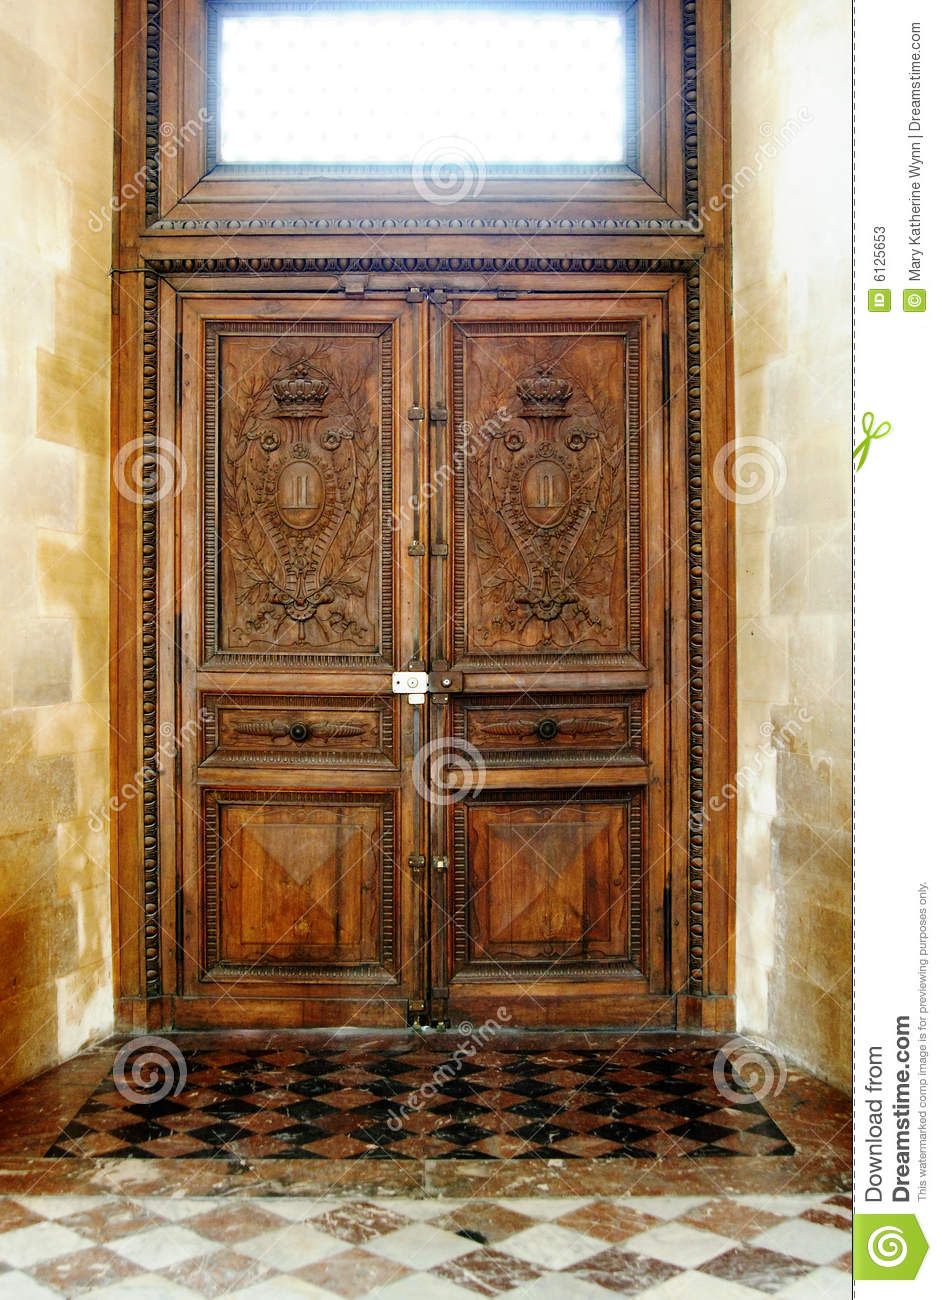 Old wooden door clipart -  View Of An Old Wooden Door With A Window Above It Inside A House